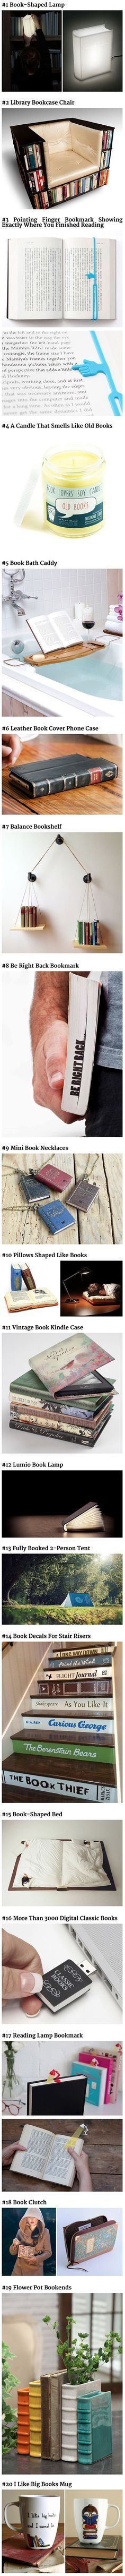 Here Are Some Cool Items That Book Fanatics Would Love I Want All Of These